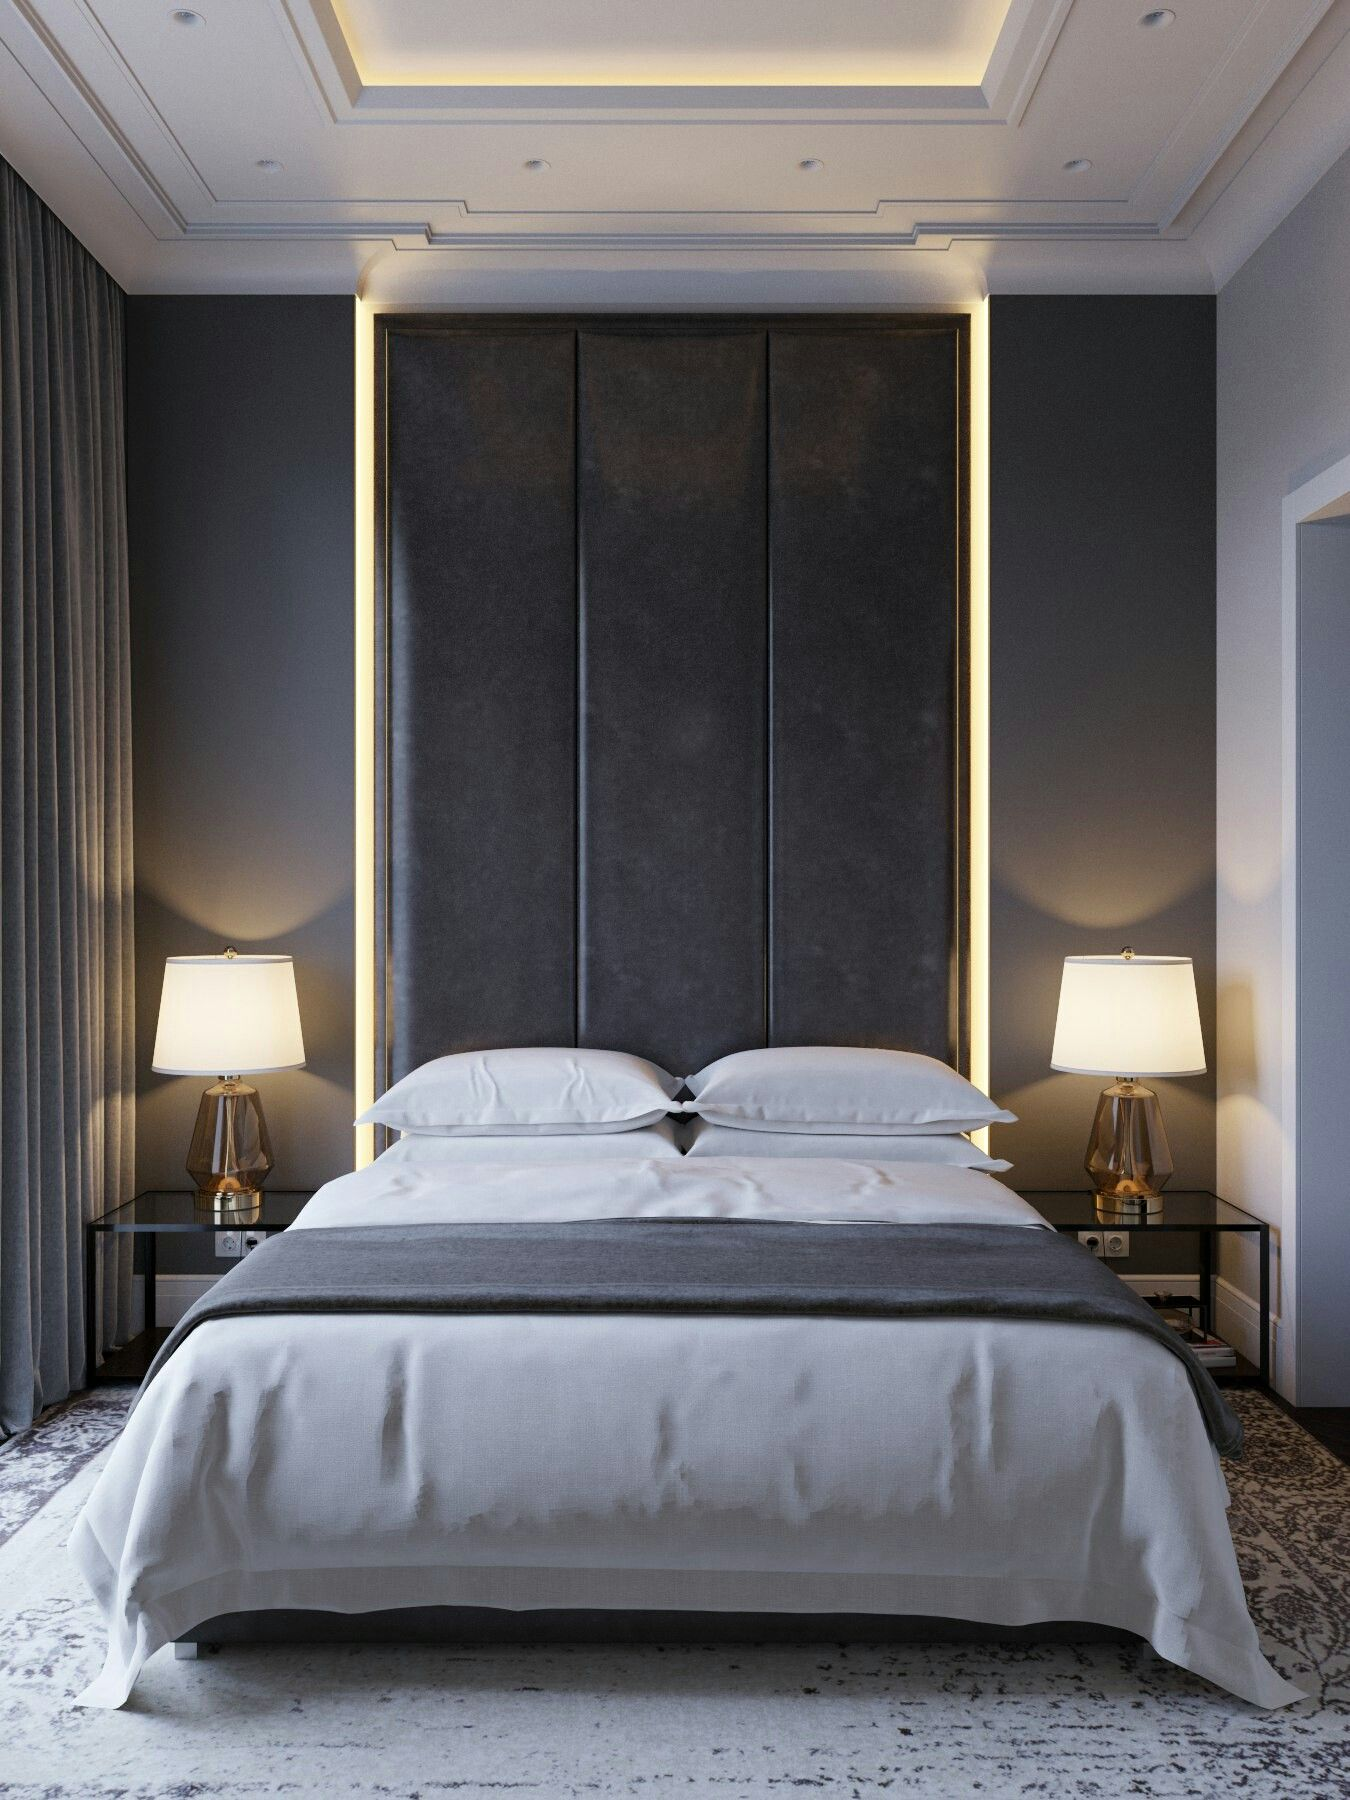 See More Modern Lamps To Inspire You For Your Interior Design Pleasing Modern Bedroom Design Review